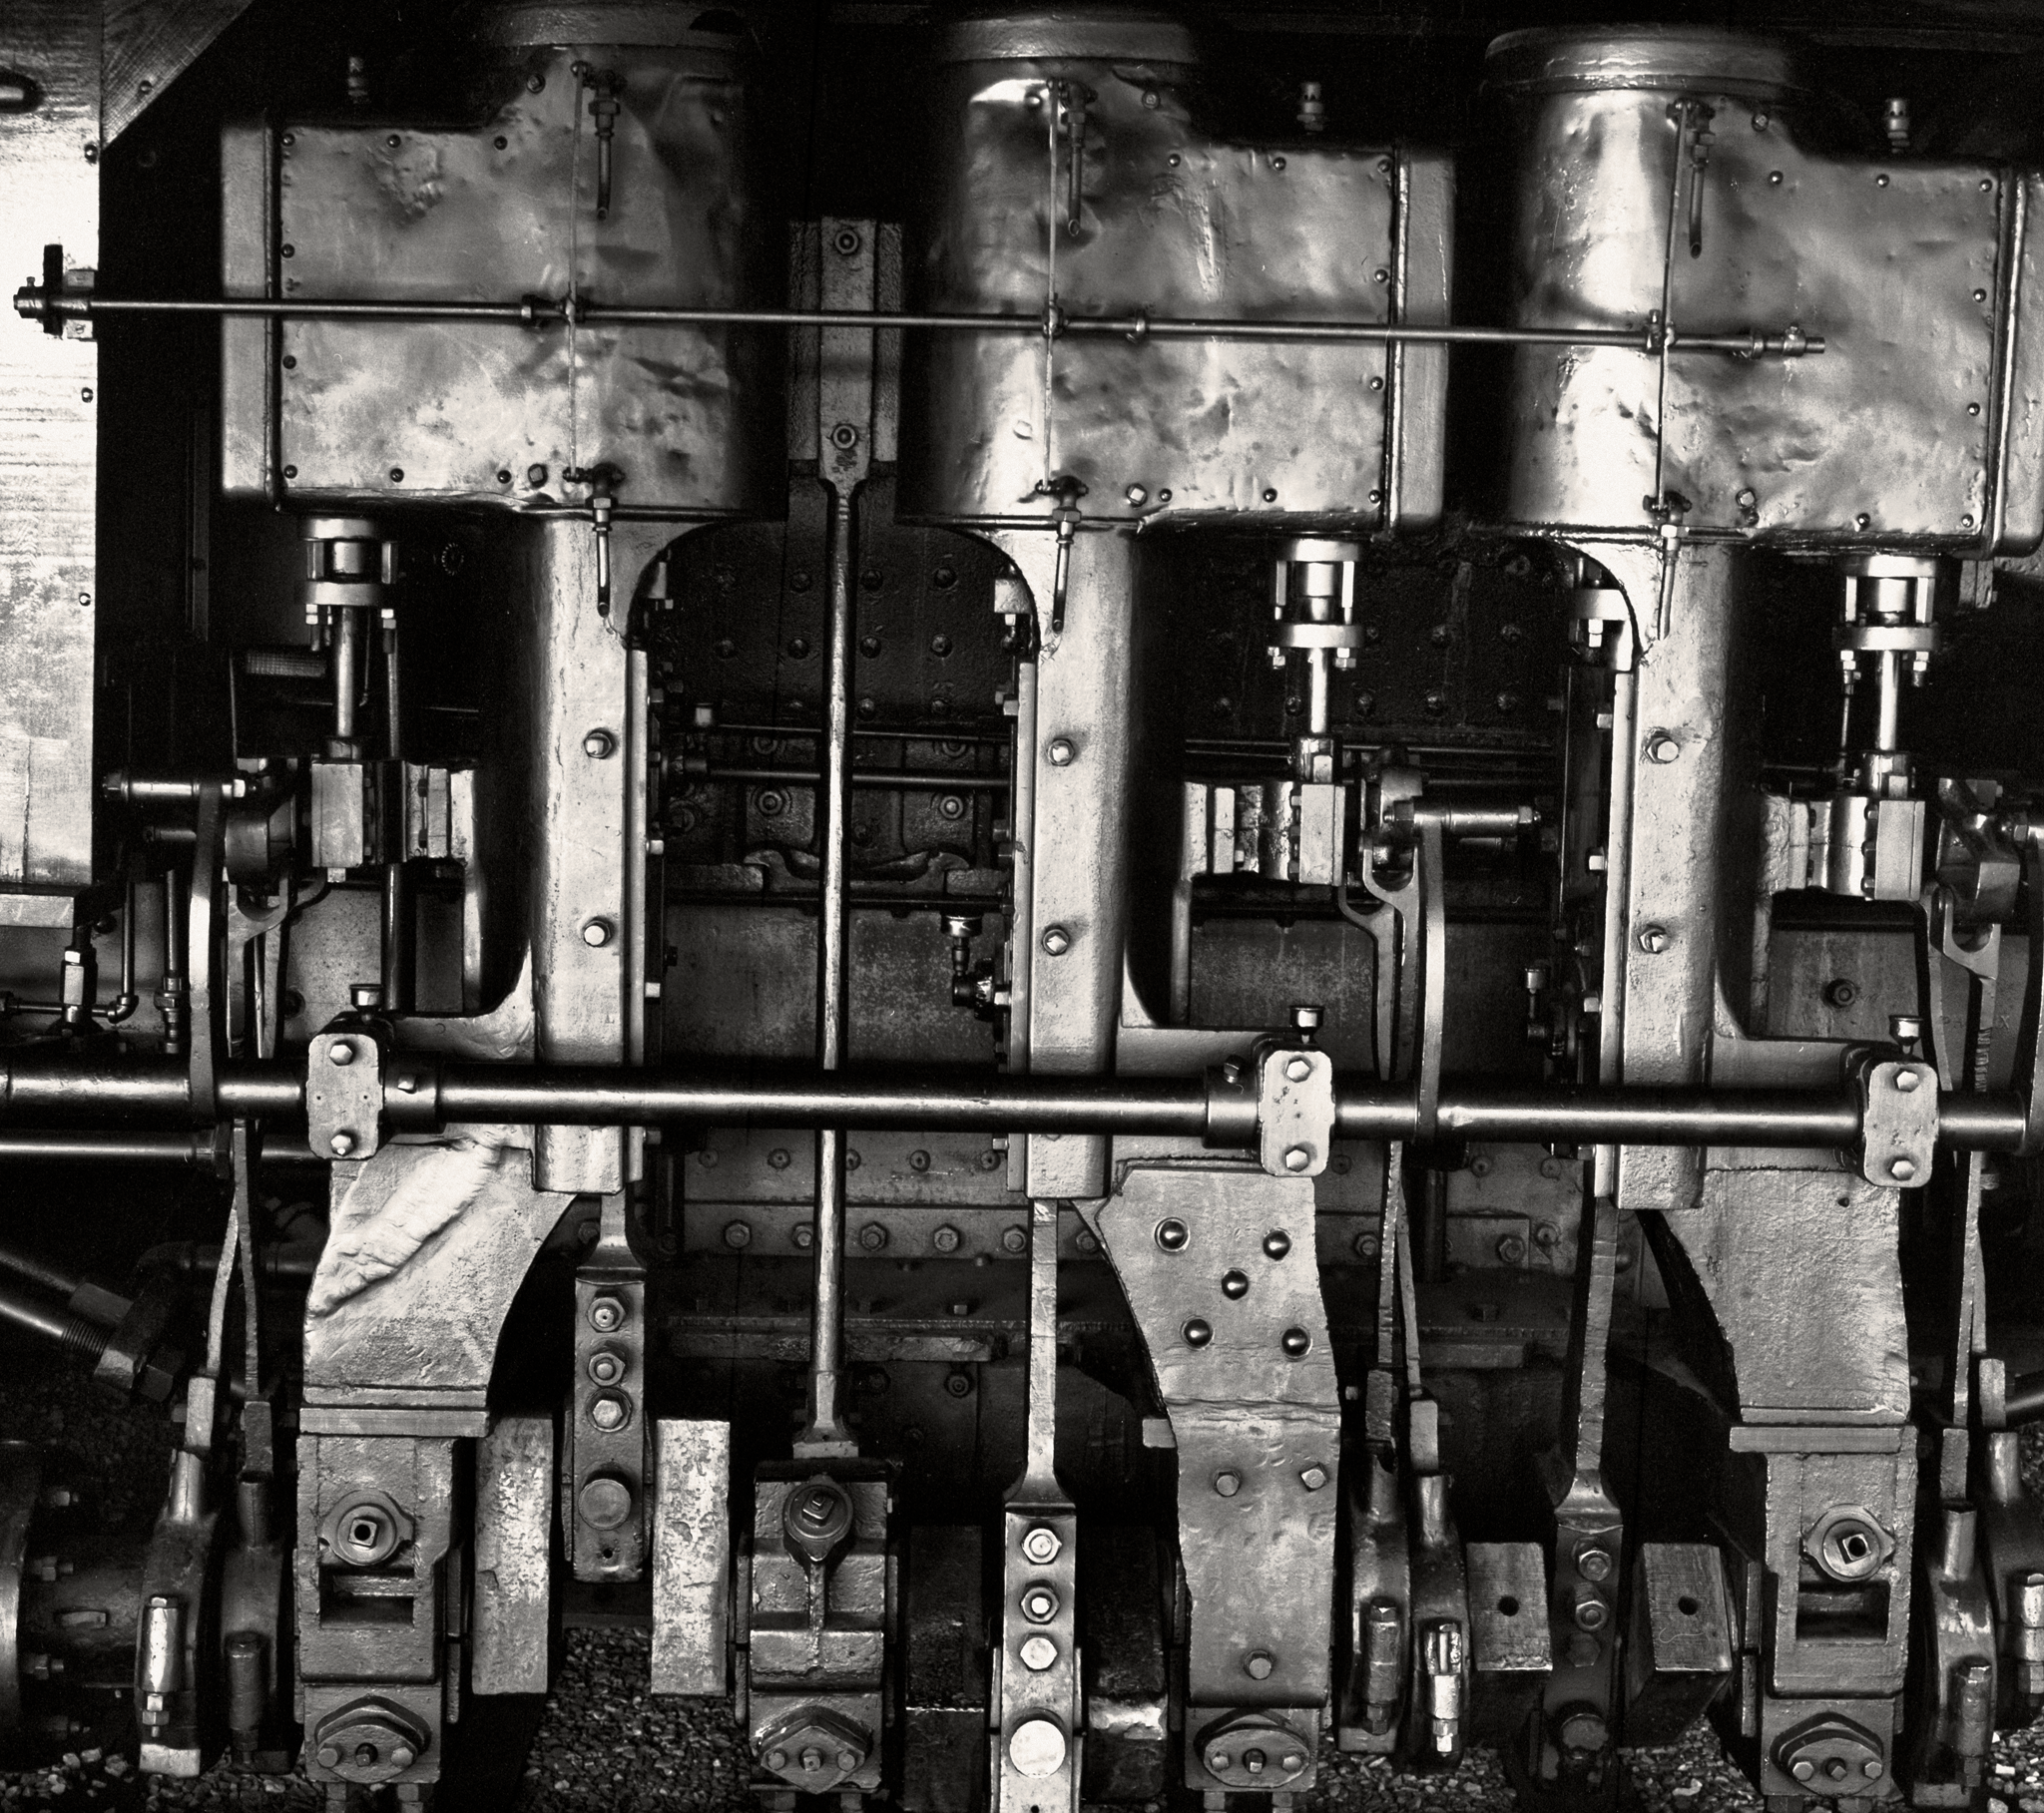 4x5_for_365_project_0309_rr_museum_of_pa_Leetonia_Shay_No1_Engine.png